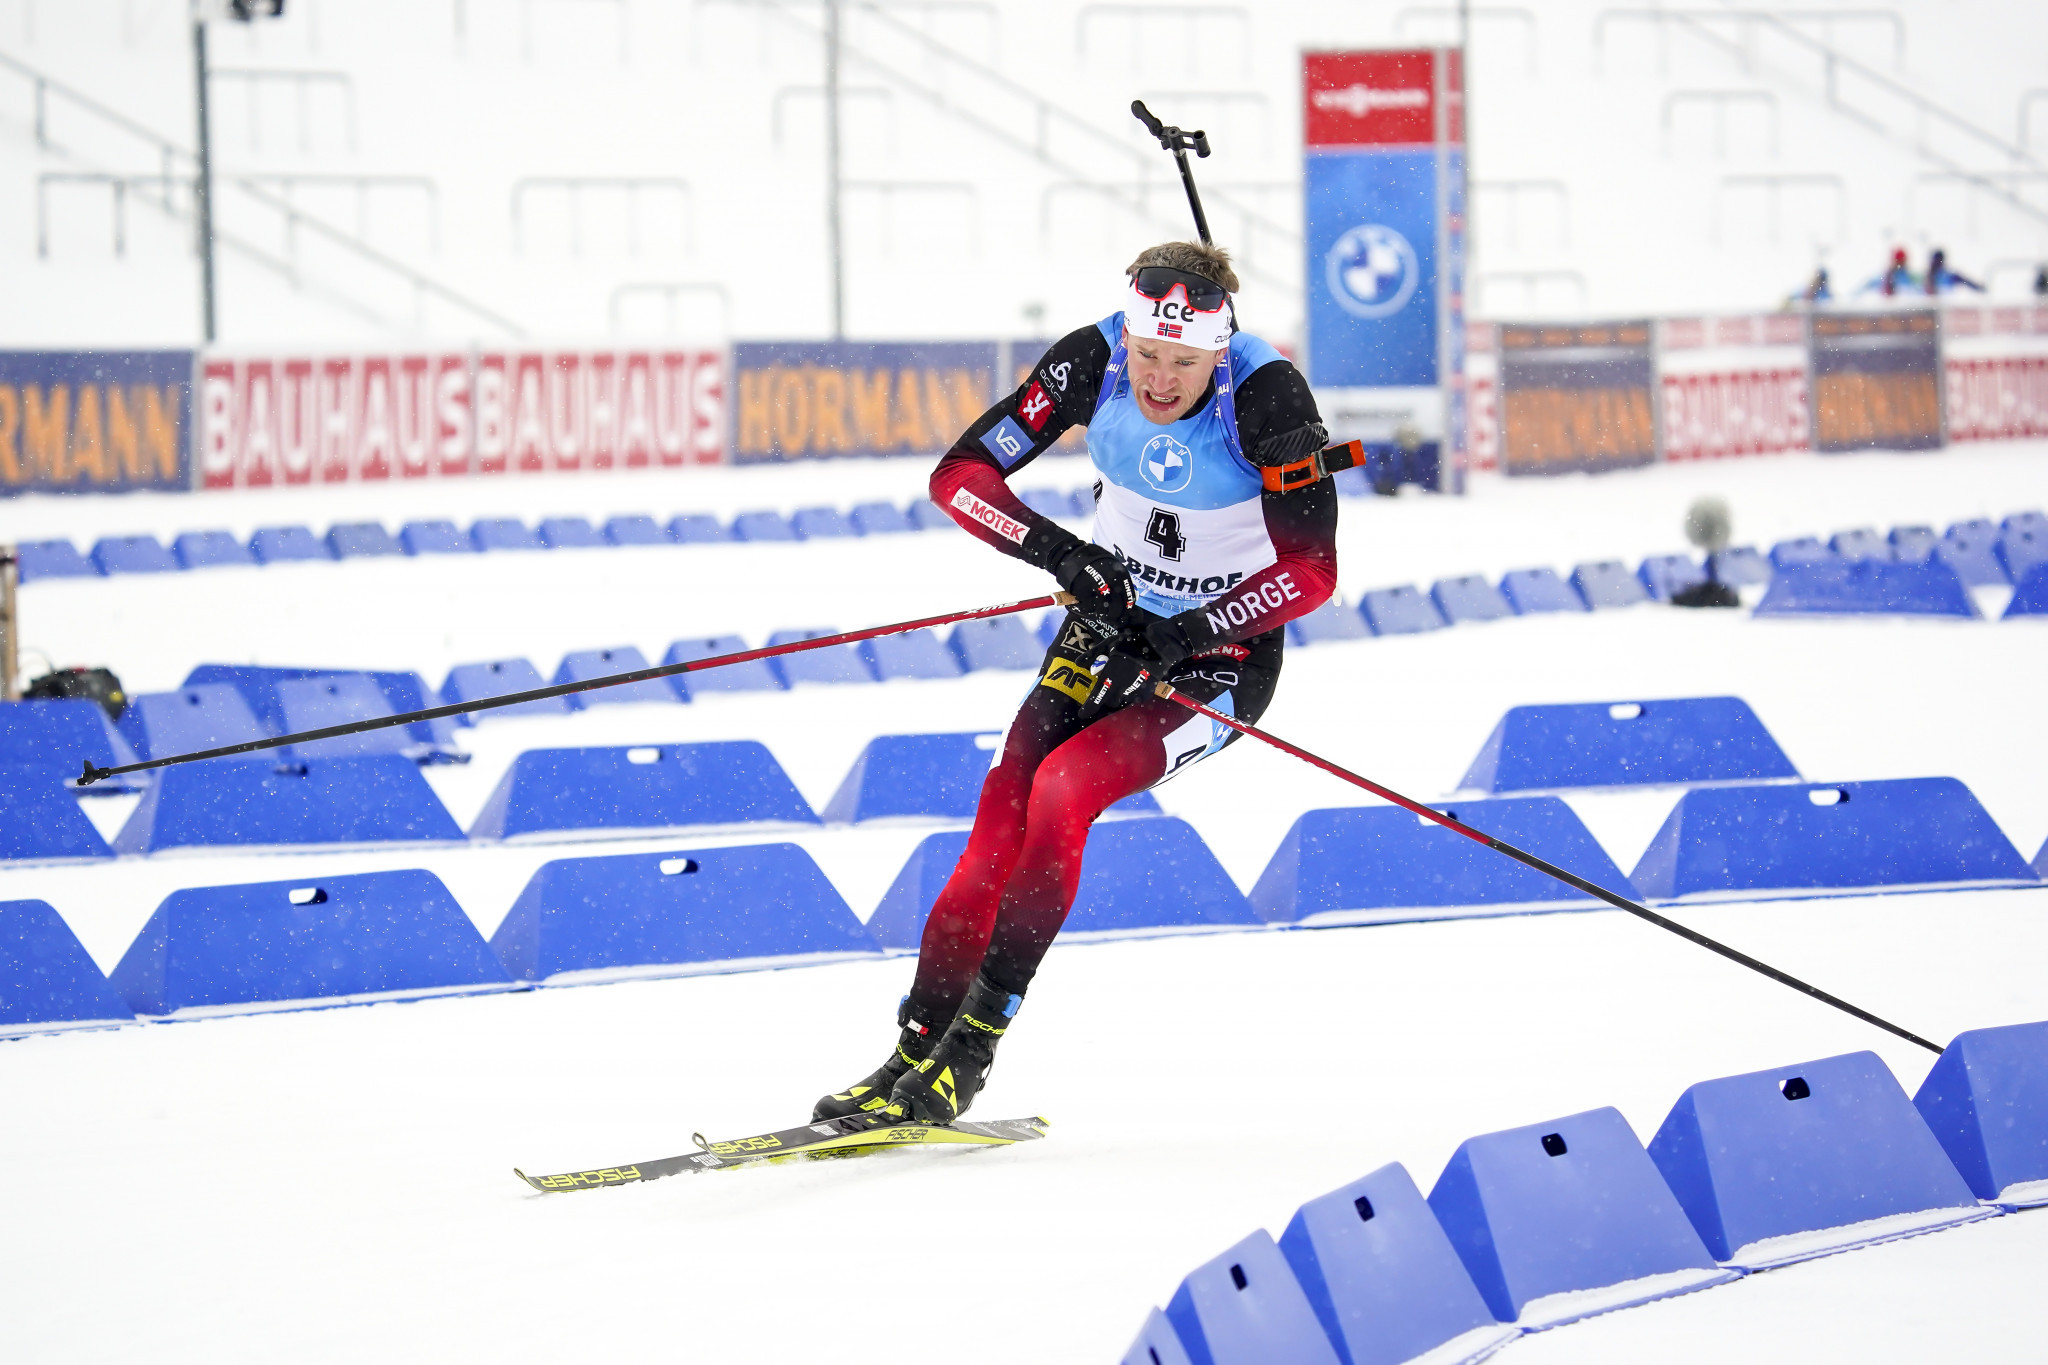 Tarjei Bø will be hoping to back up his victory in Oberhof as he targets more success in the IBU Biathlon World Cup ©Getty Images